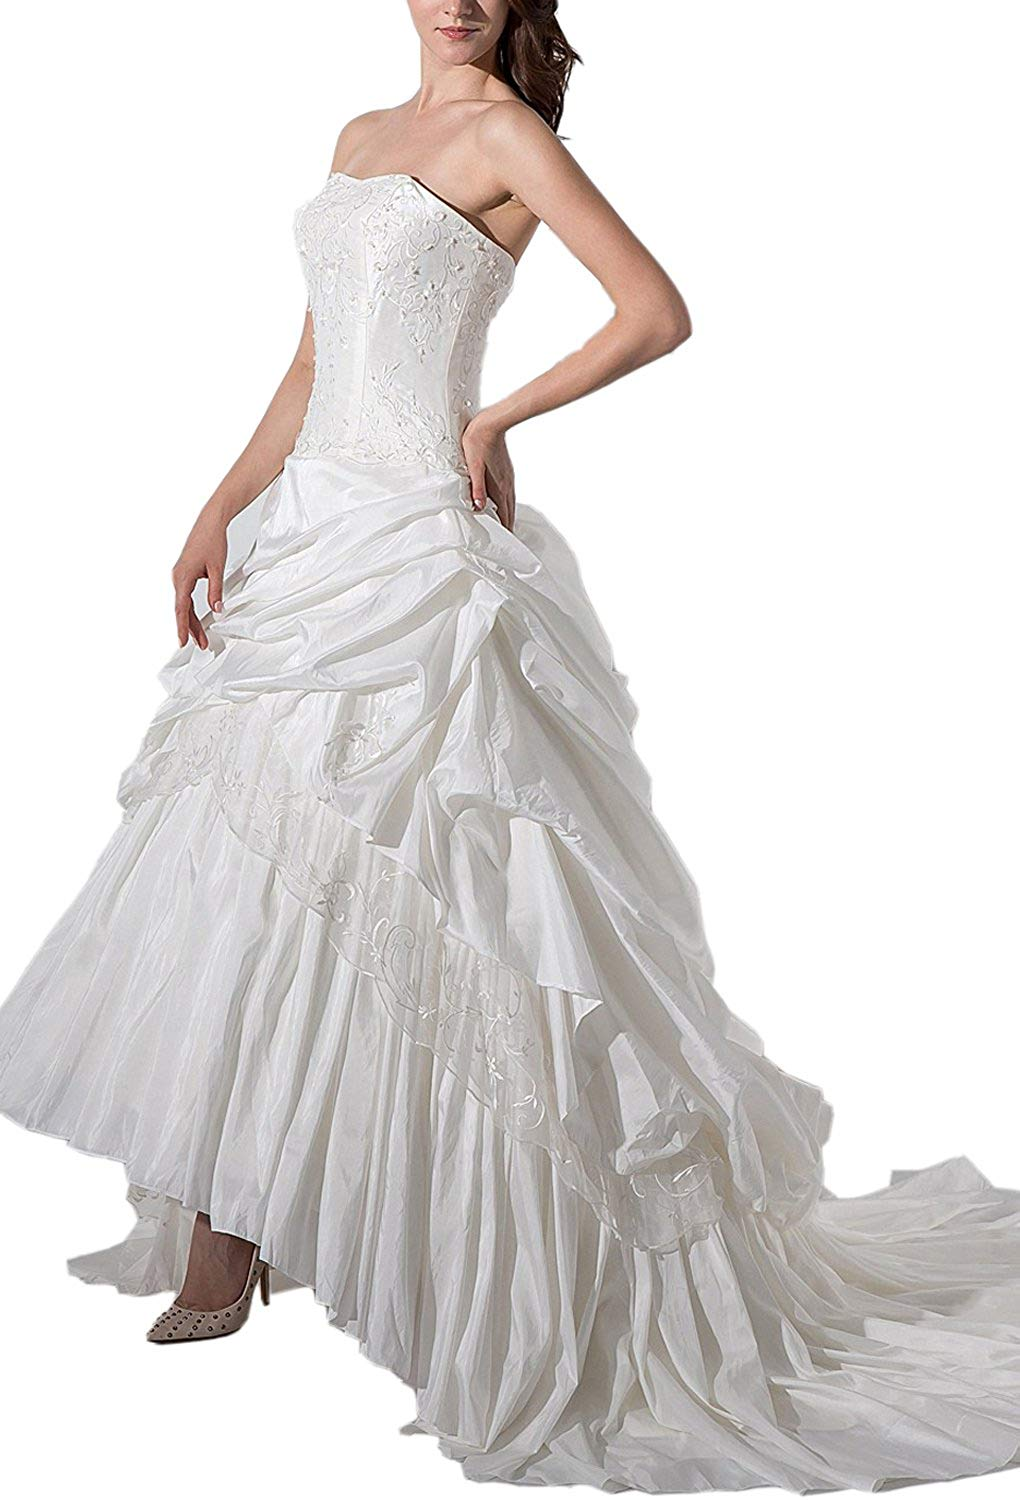 7d0d1bcf0f Get Quotations · Angel Formal Dresses Women s Strapless Satin Embroidery Strapless  Bridal Wedding Dresses